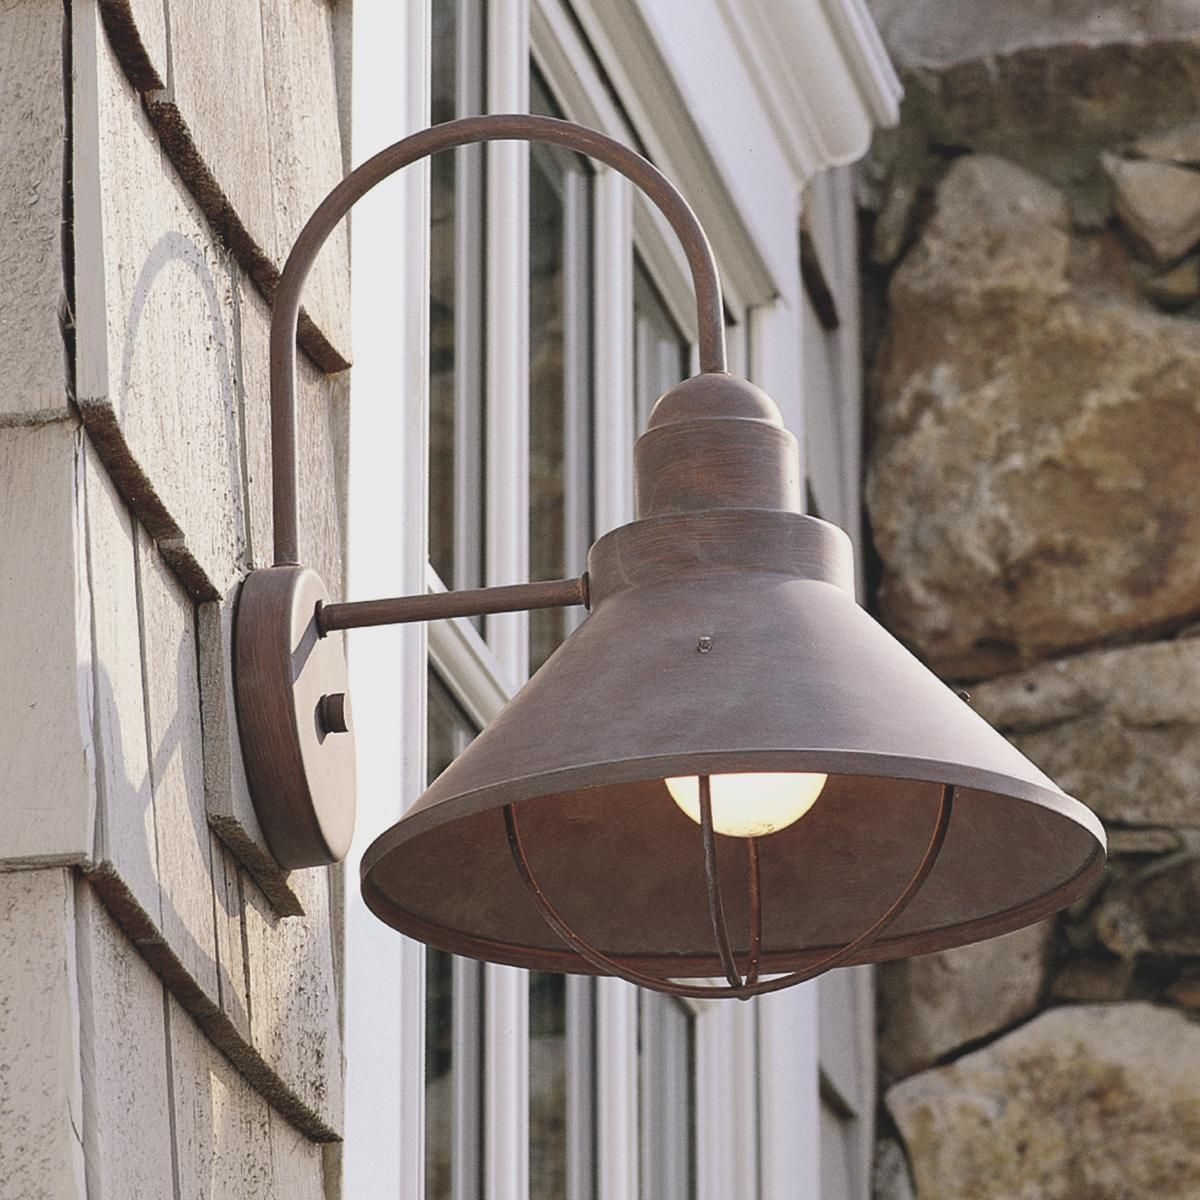 Garage Outside Lighting Ideas: Caboose Outdoor Light - Large